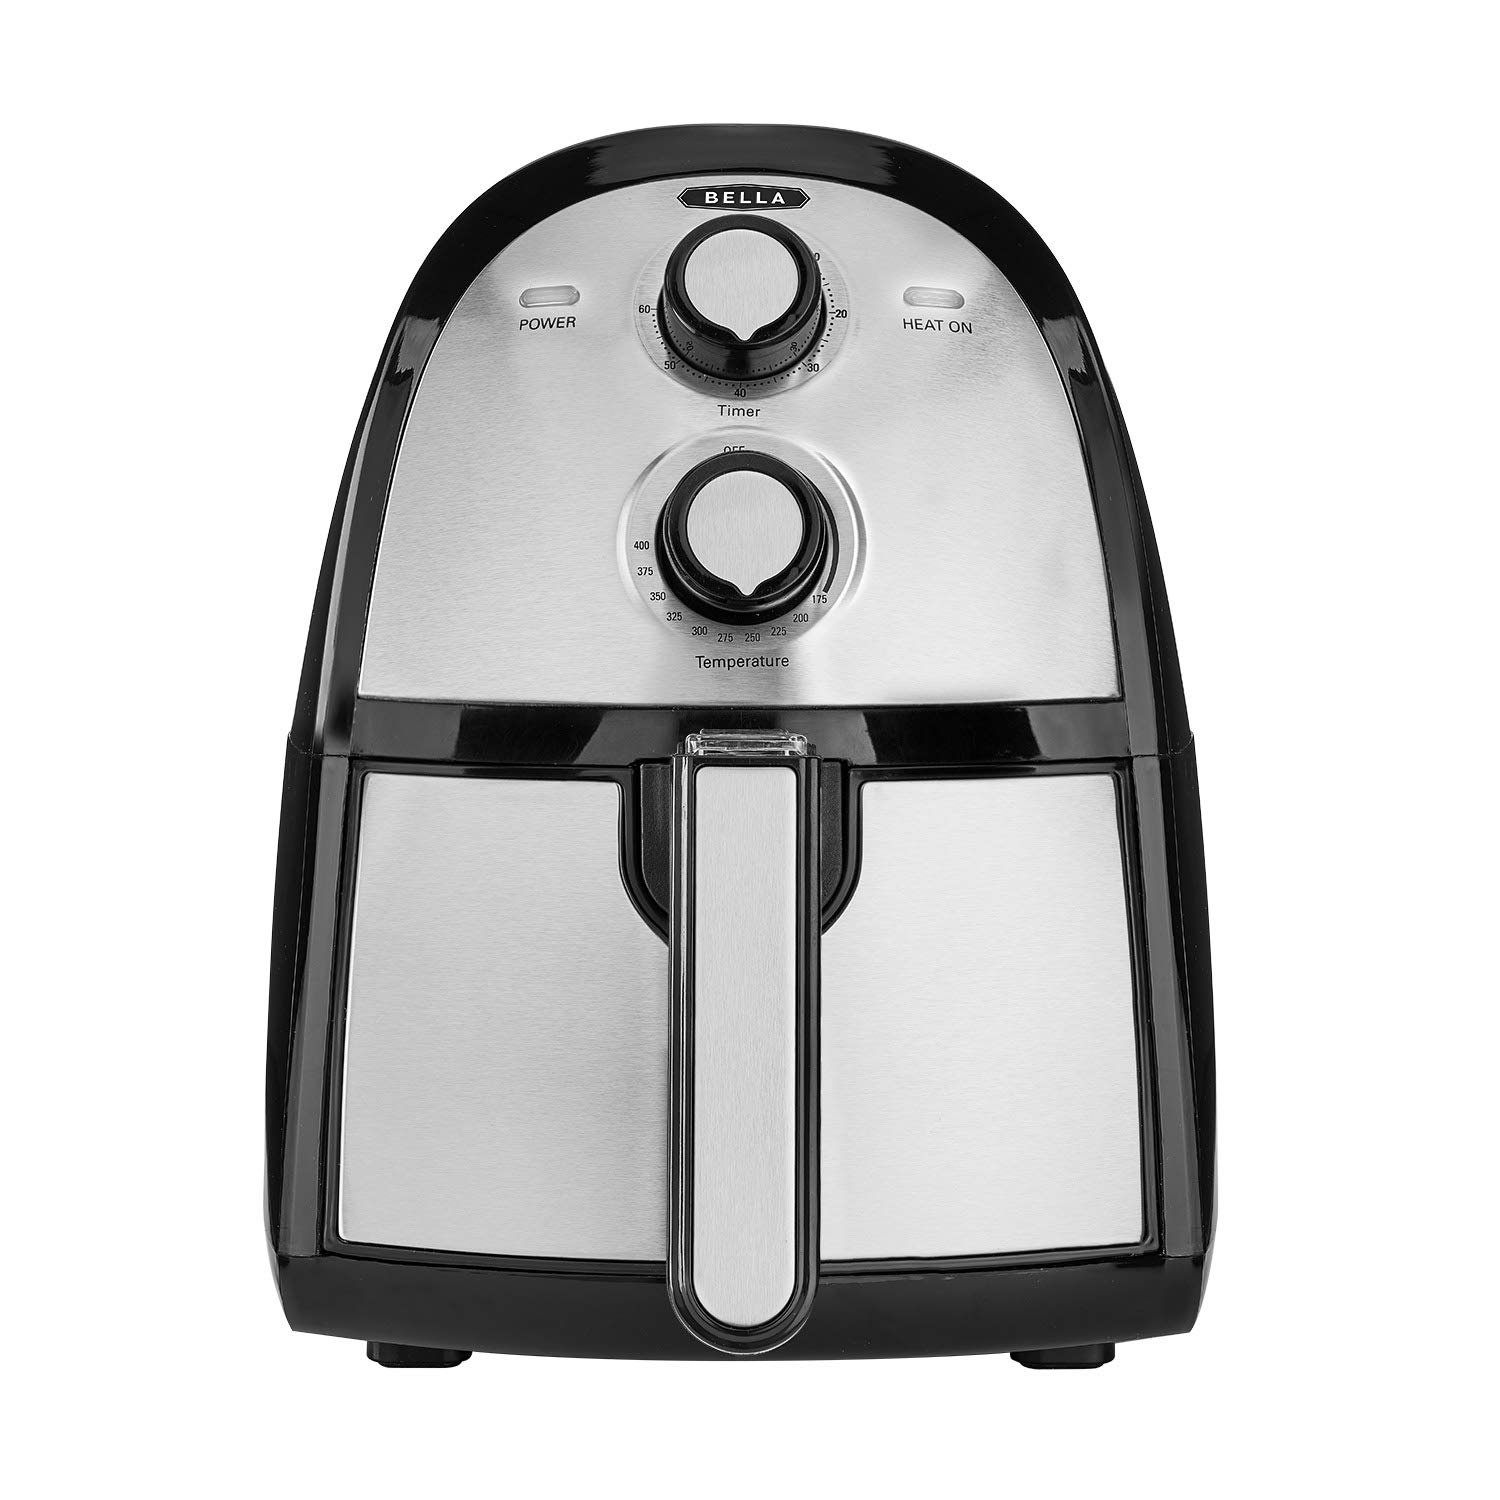 BELLA 14752 Air Fryer